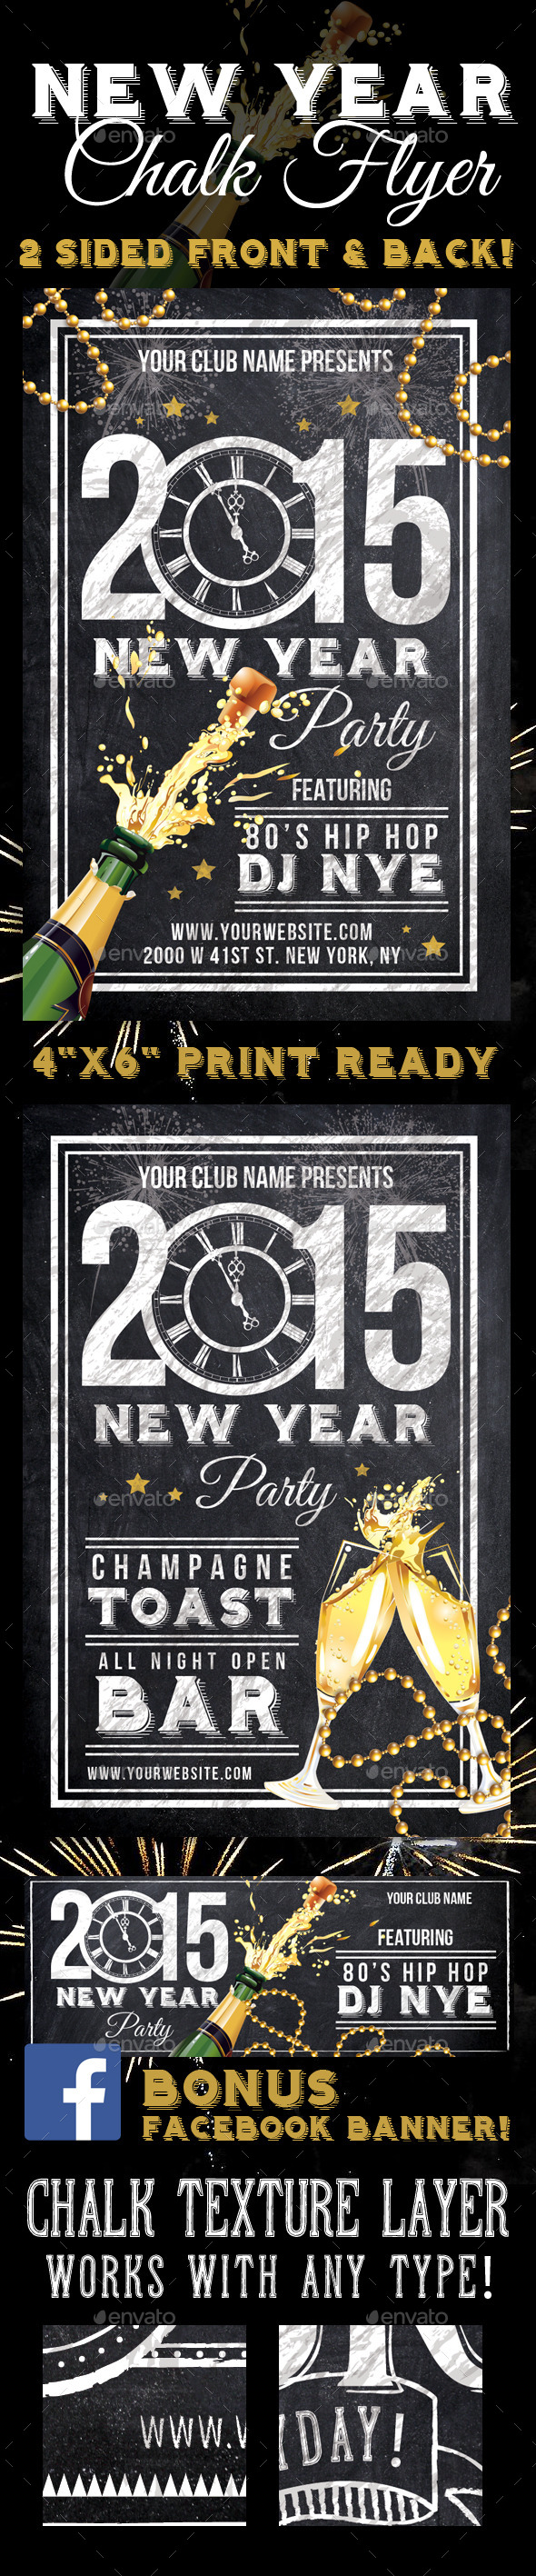 2015 New Years Party Chalk Flyer - Clubs & Parties Events